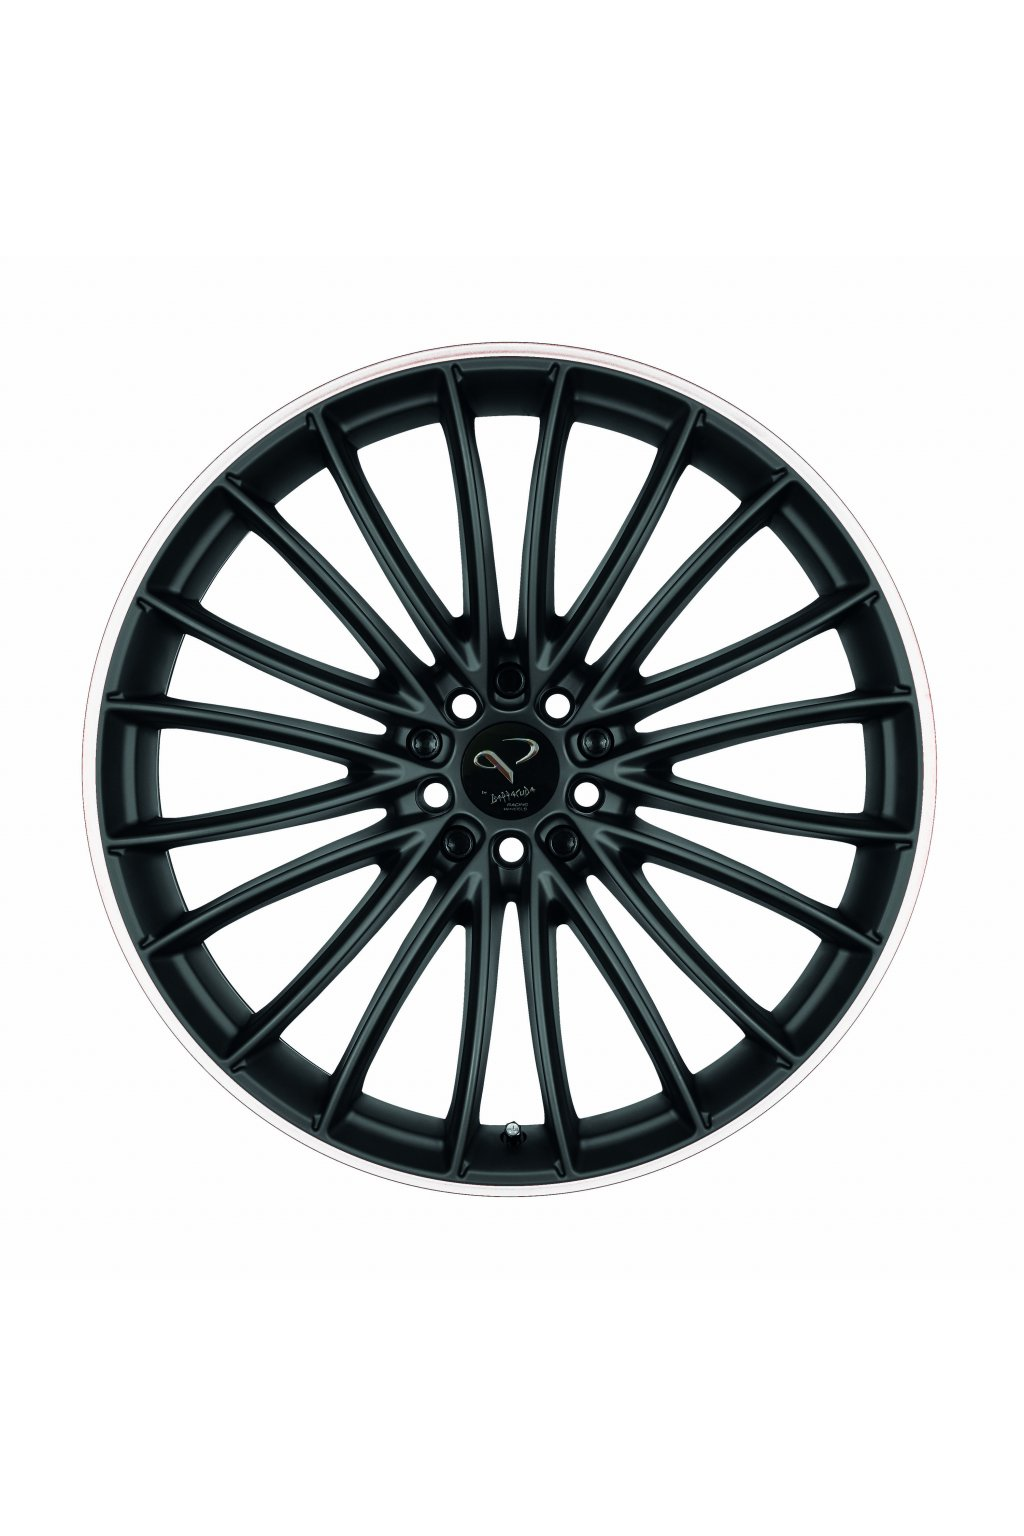 Disk CORSPEED LE MANS 8.0x18 / 5x112